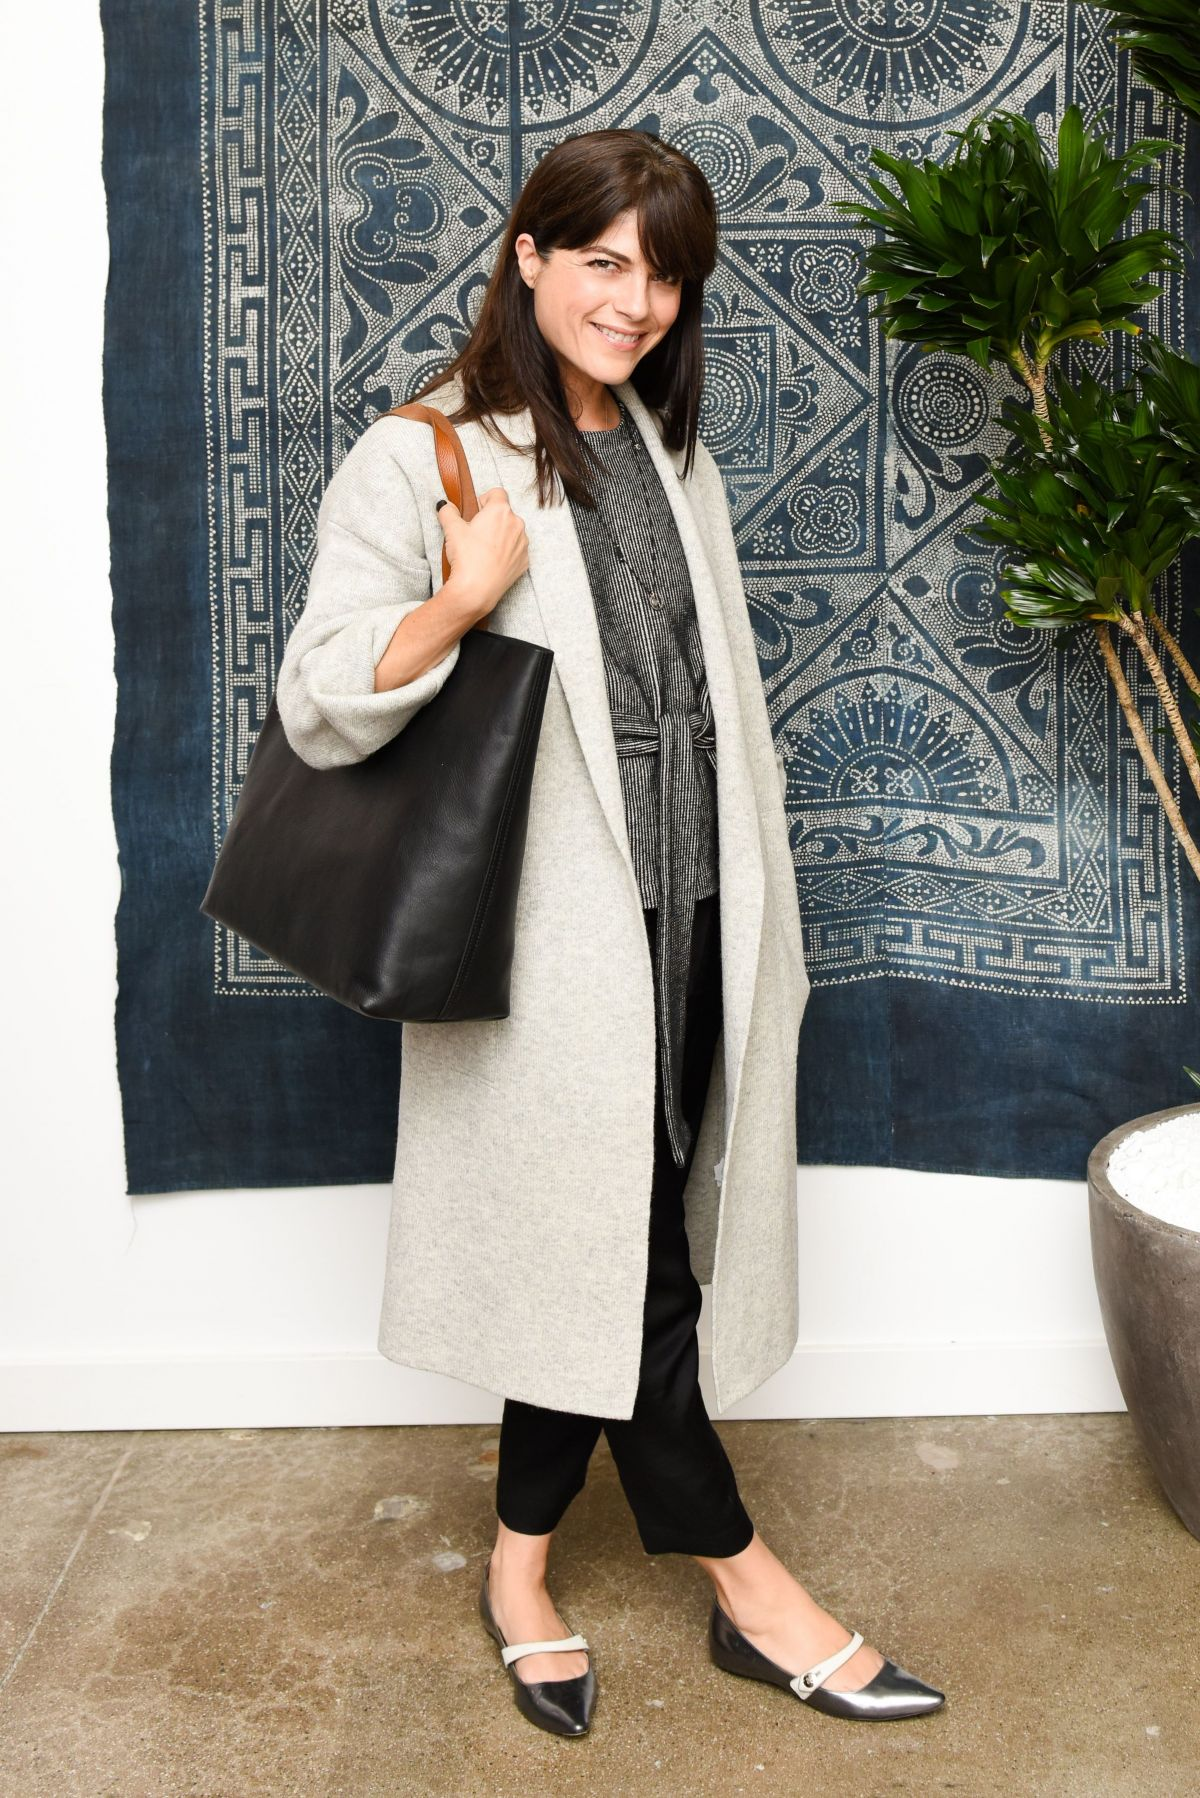 SELMA BLAIR at Madewell Celebrates The Holidays in Beverly Hills 11/15/2016